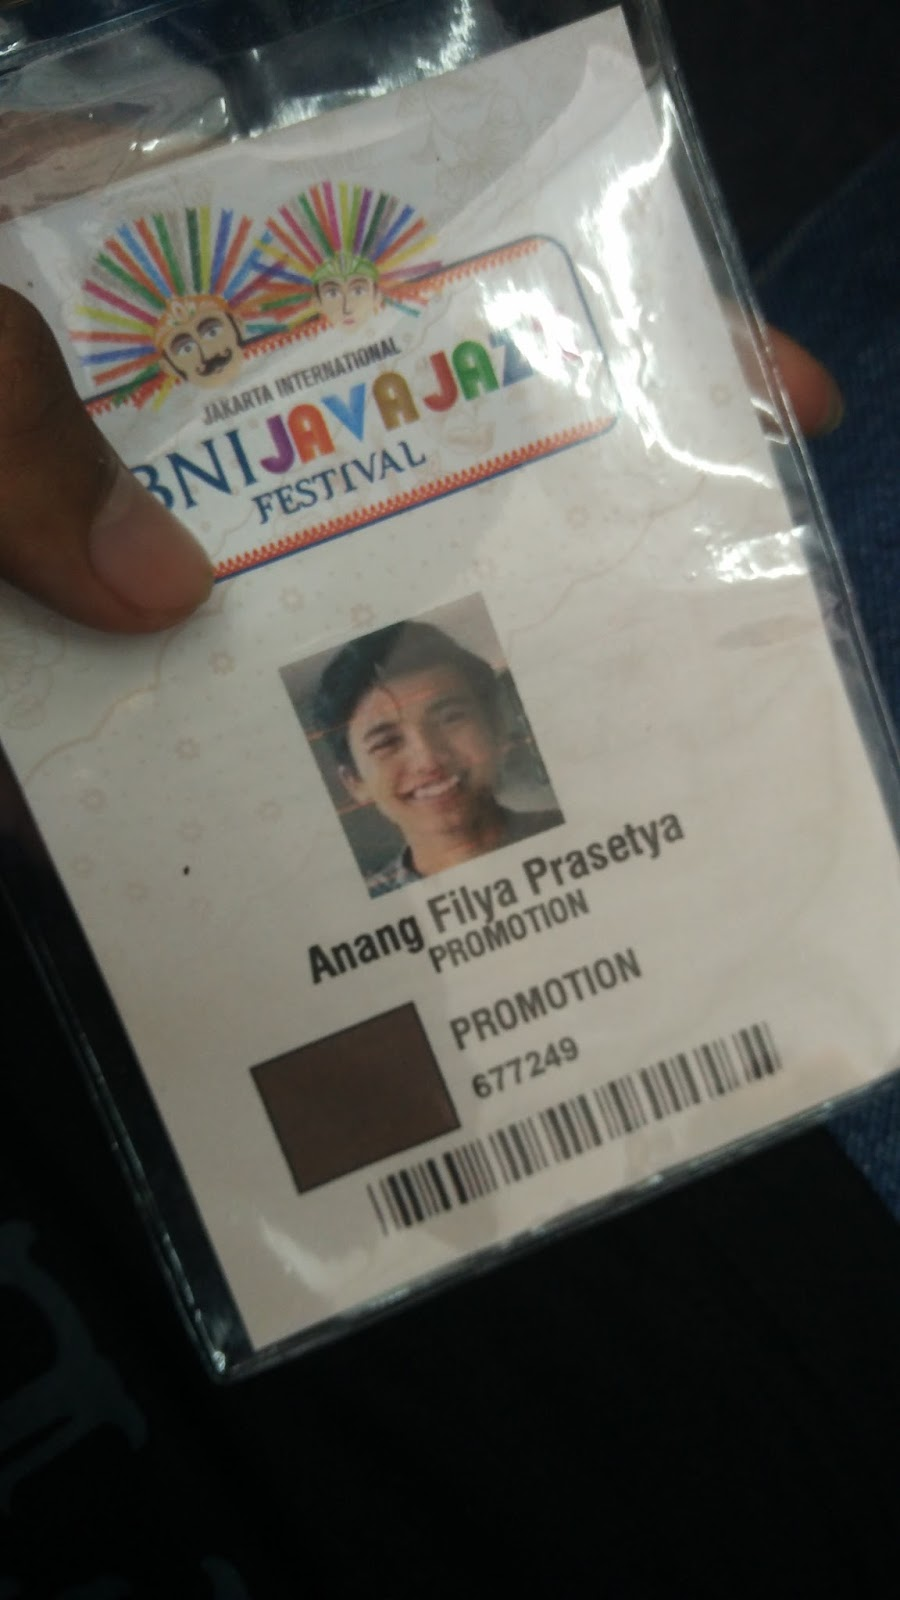 ID Card Java Jazz 2017